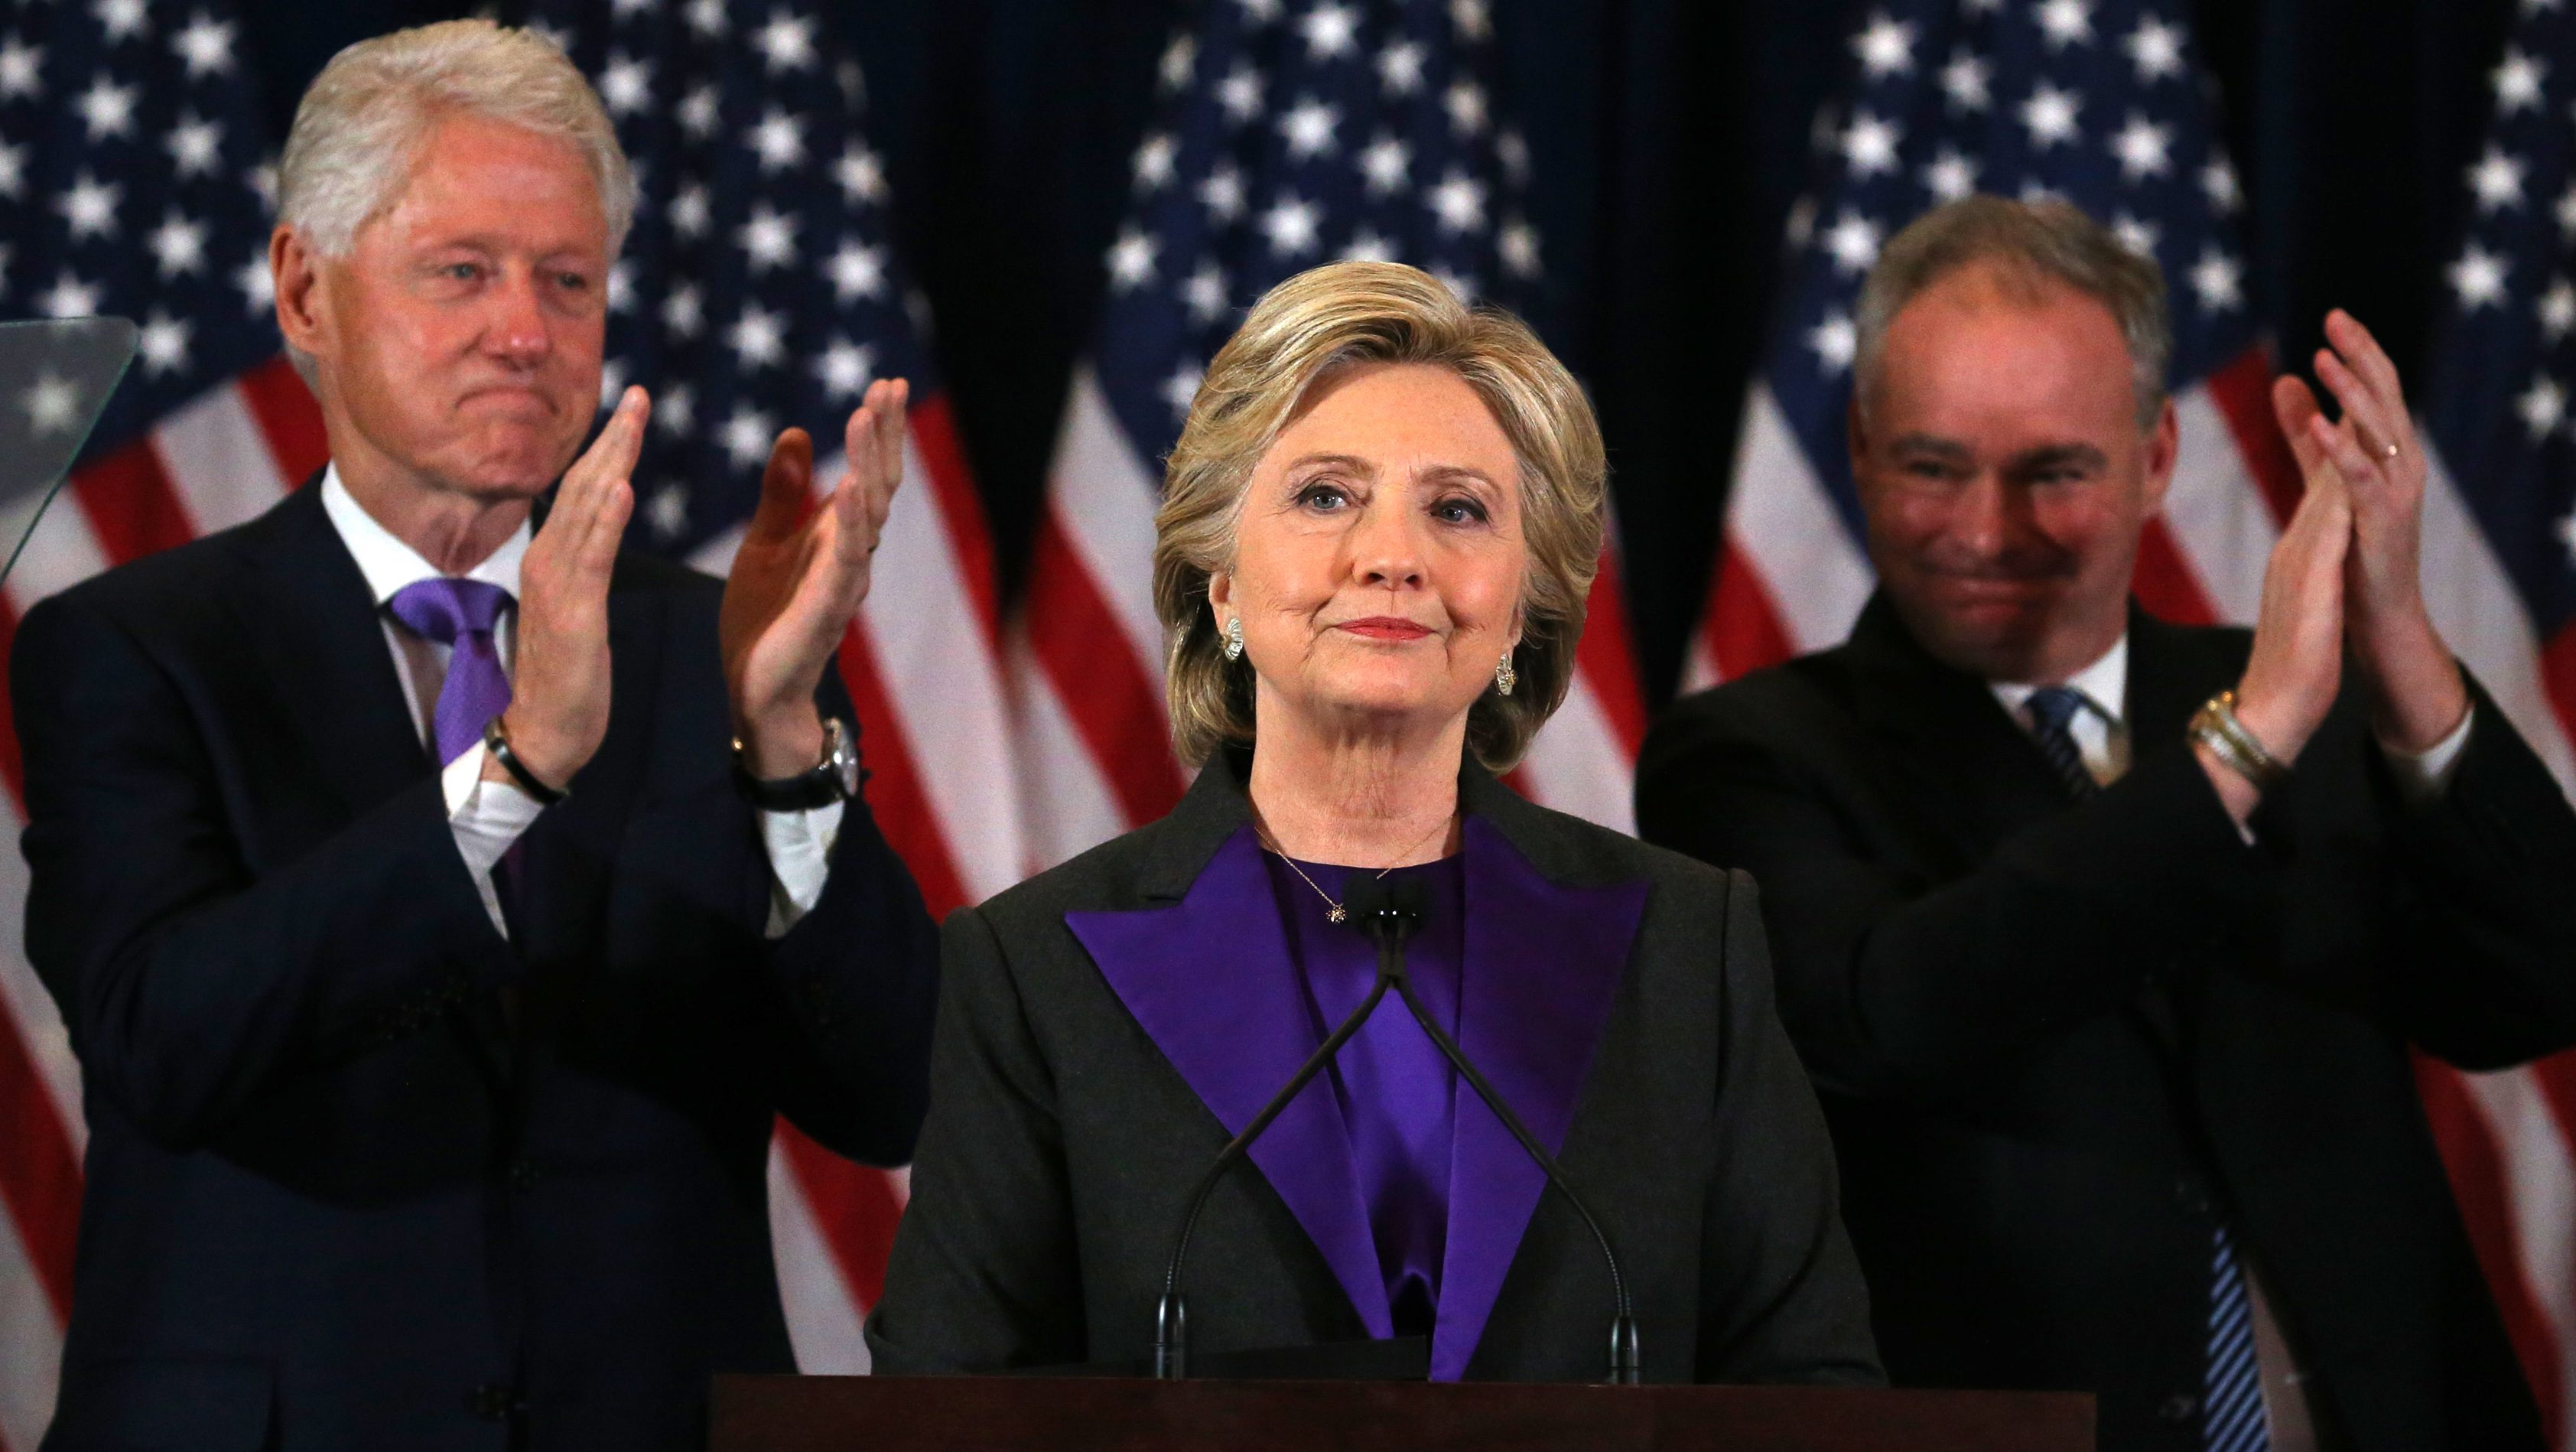 Hillary Clinton addresses her staff and supporters about the results of the U.S. election at a hotel in New York